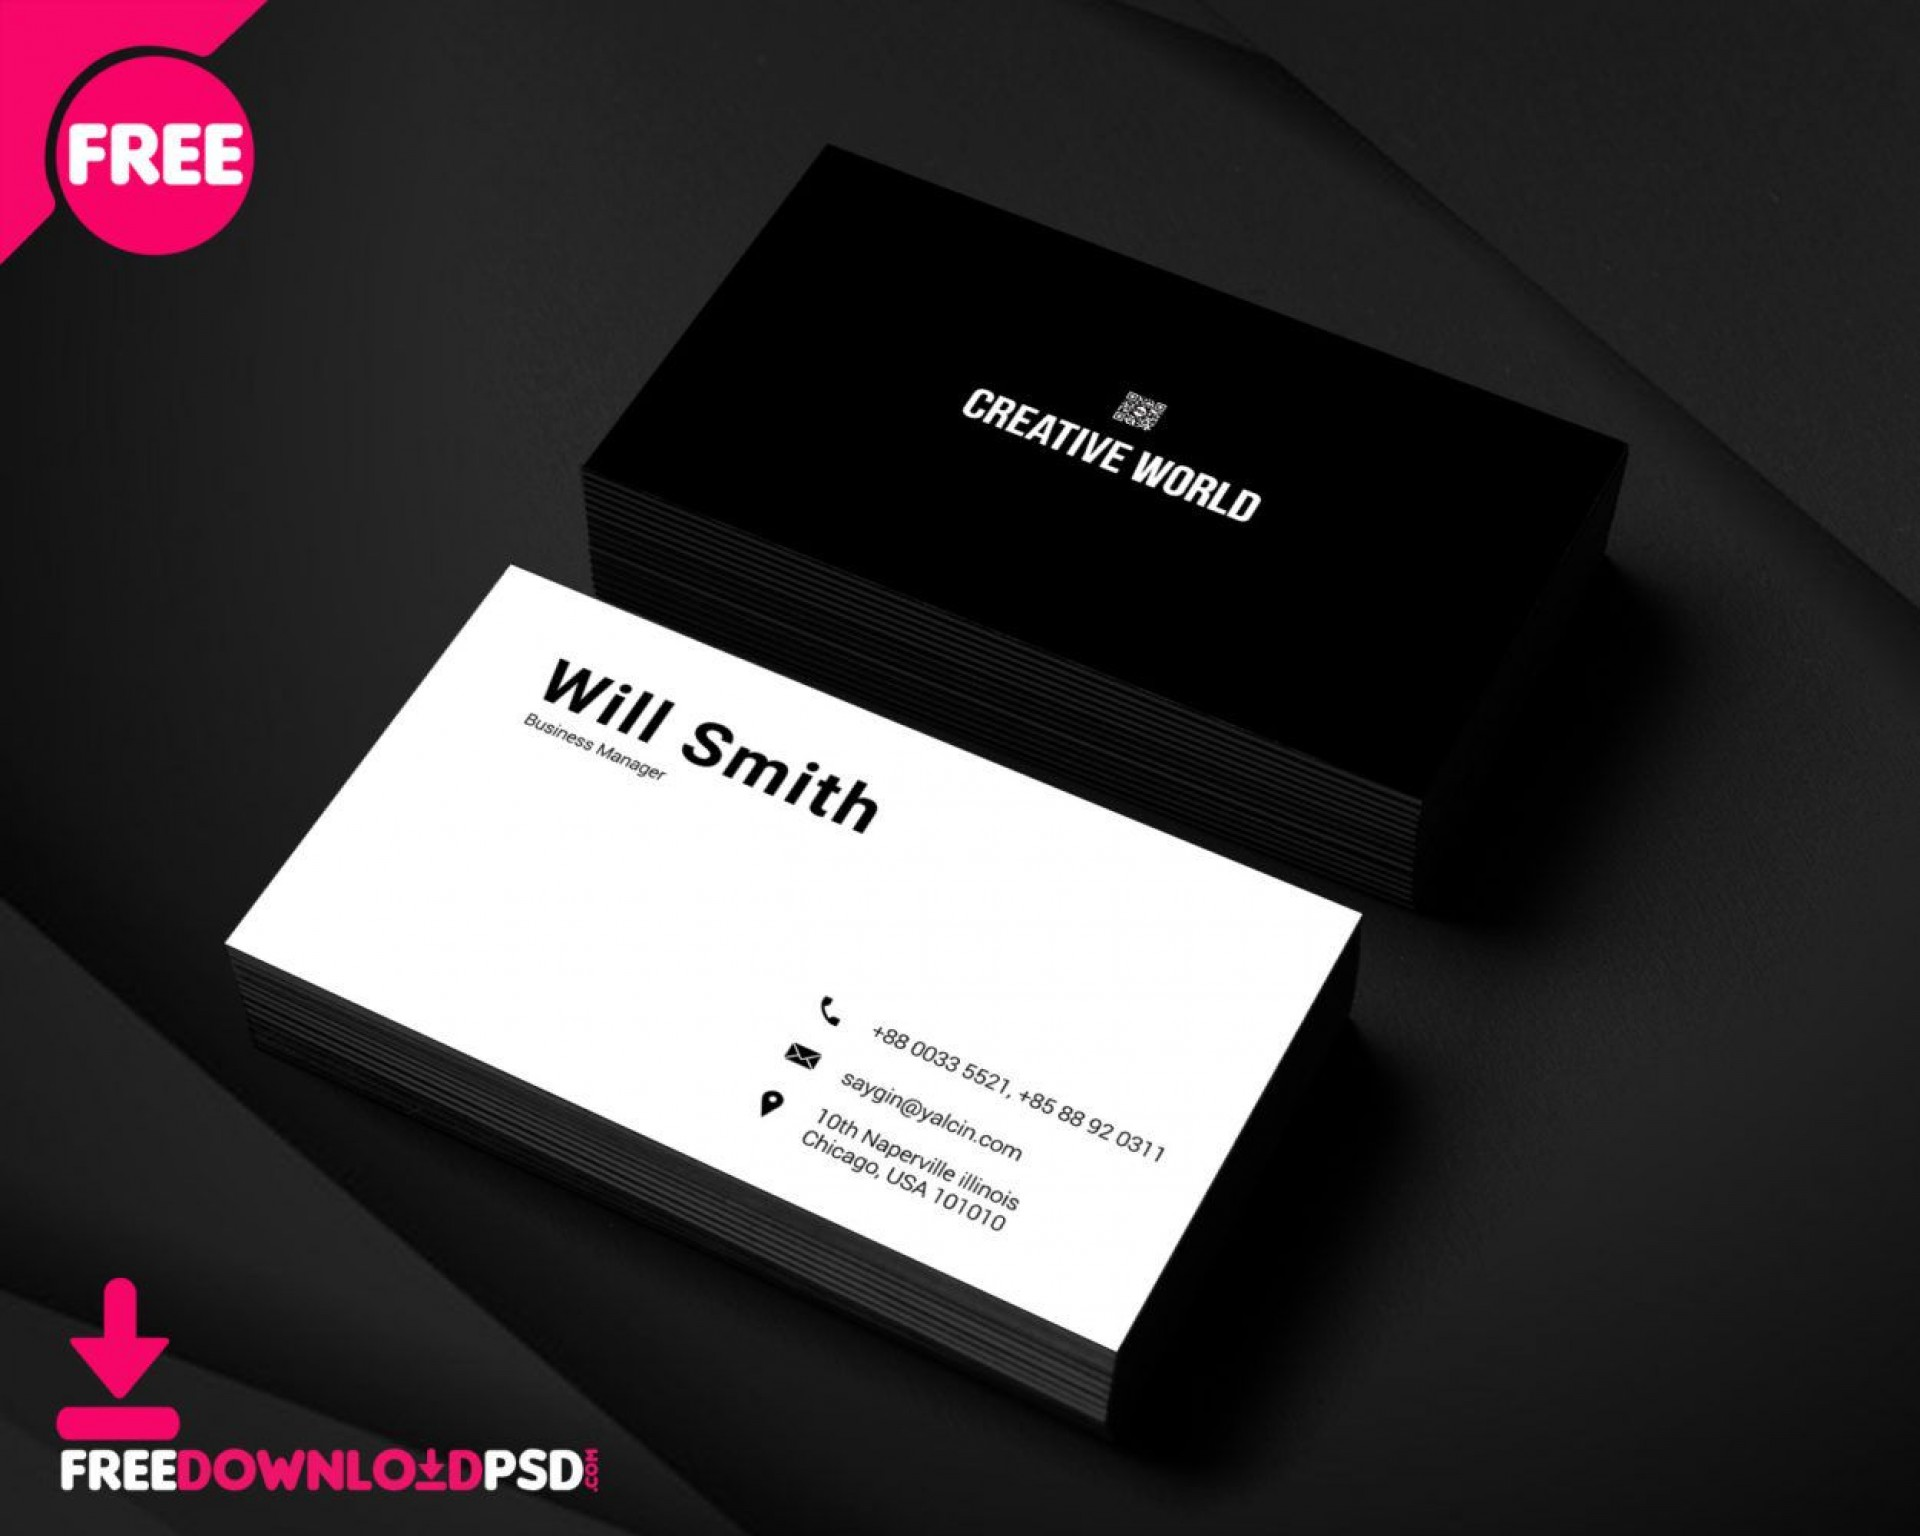 007 Unforgettable Simple Busines Card Template Photoshop High Resolution 1920